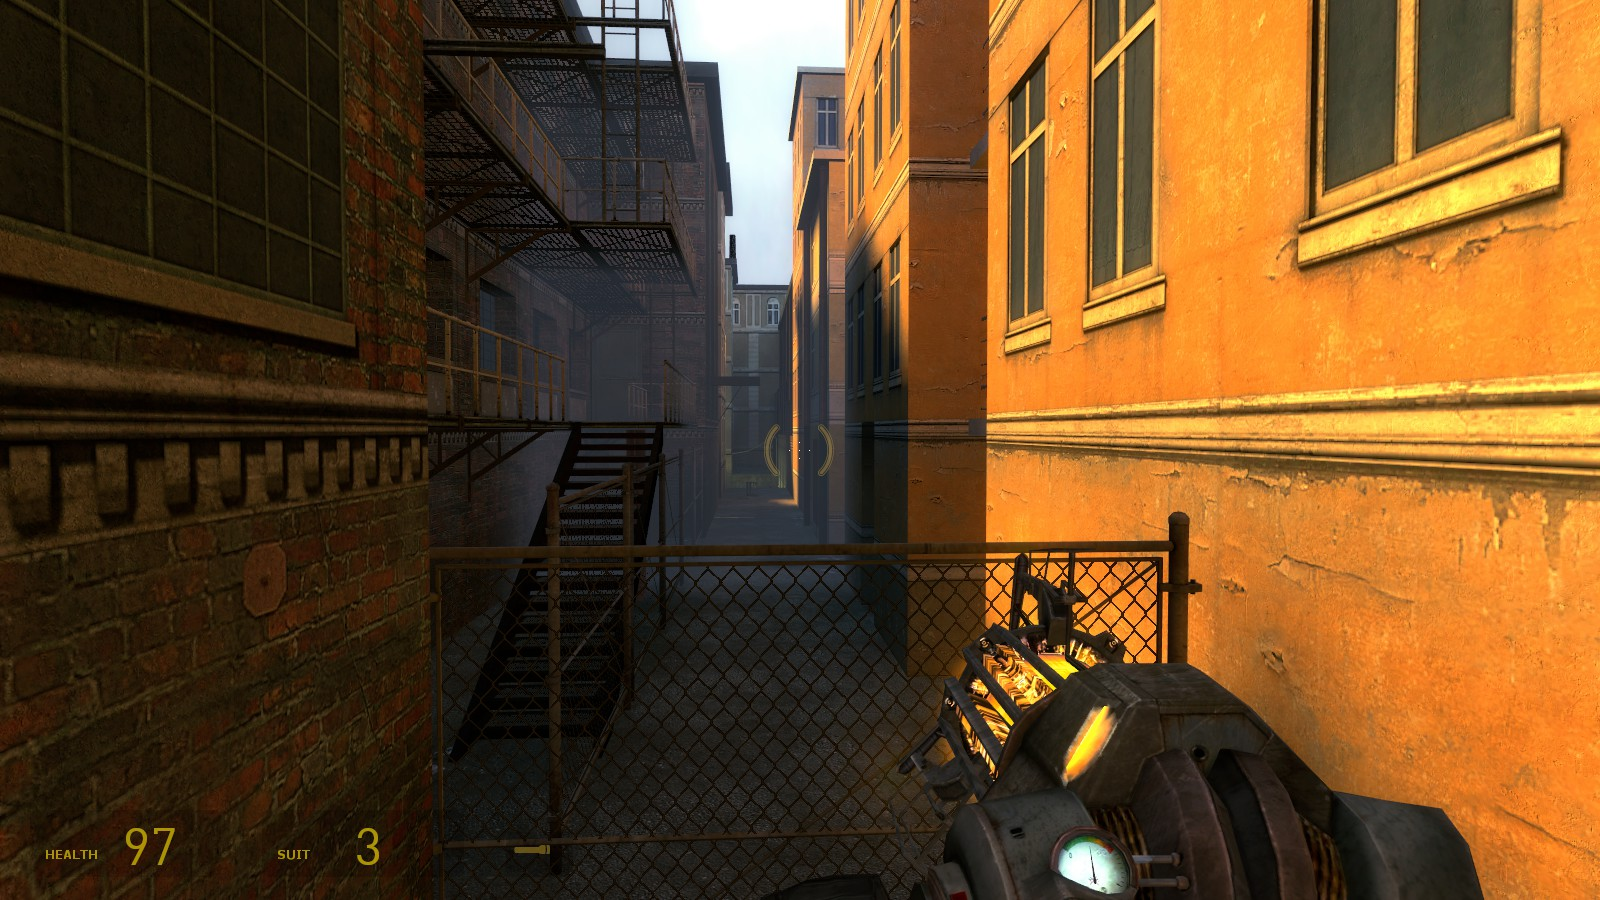 (view original). Messin with environment lighting. & Messin with environment lighting... image - Half Life 2: Daylight ...